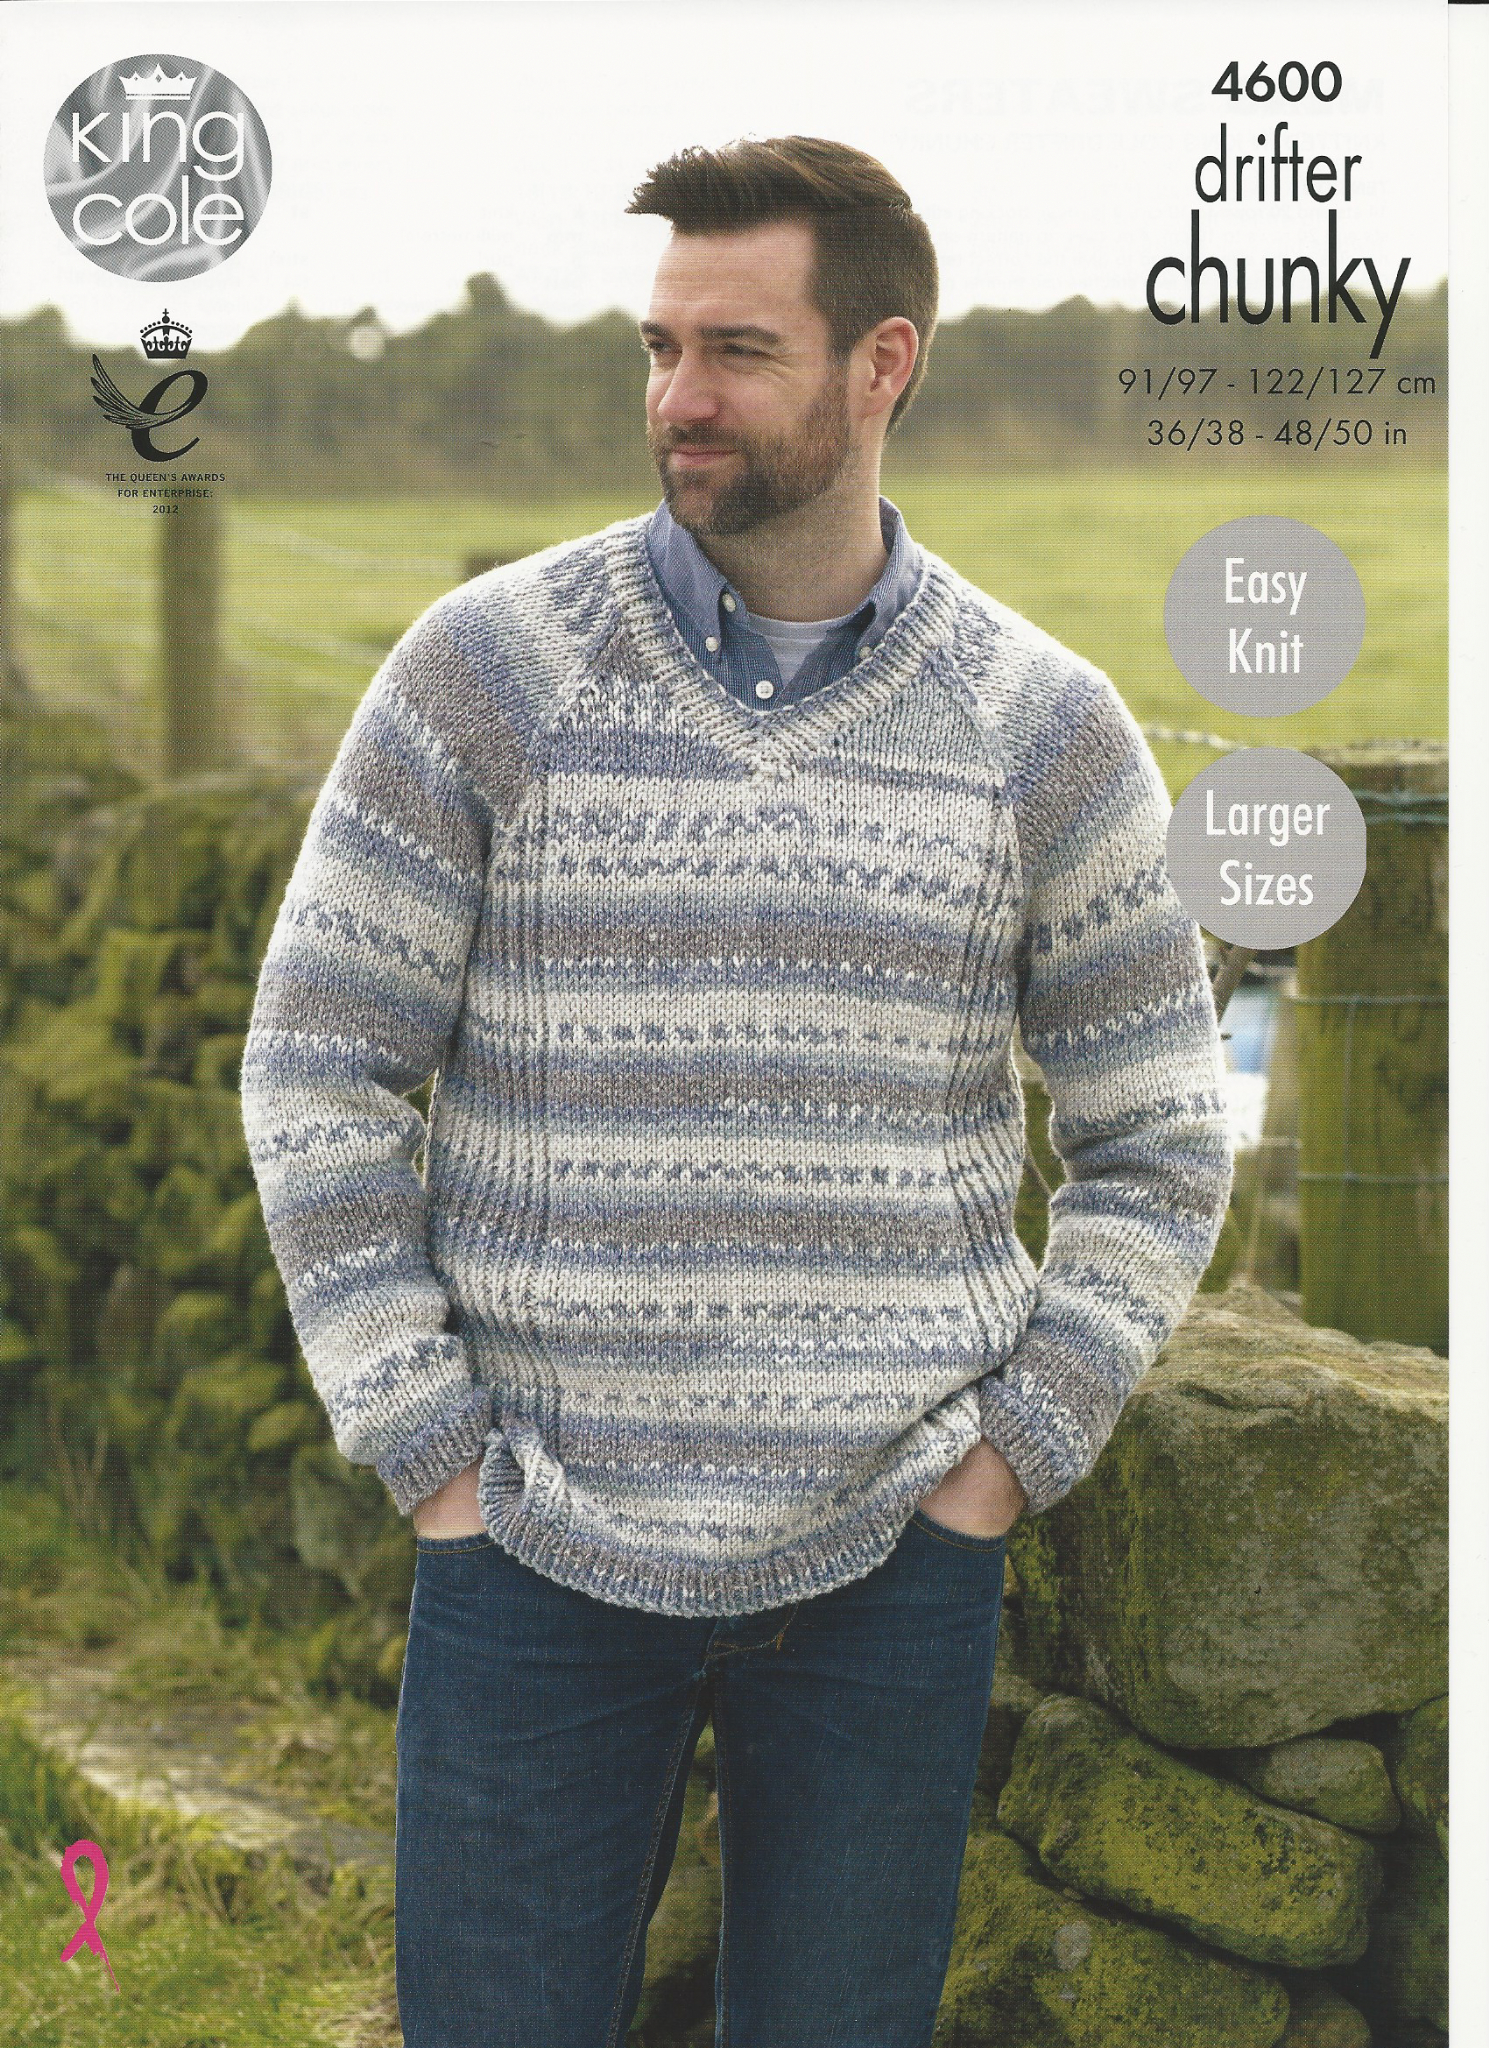 Mens Knitting Patterns King Cole Mens Sweaters Knitting Pattern In Drifter Chunky 4600